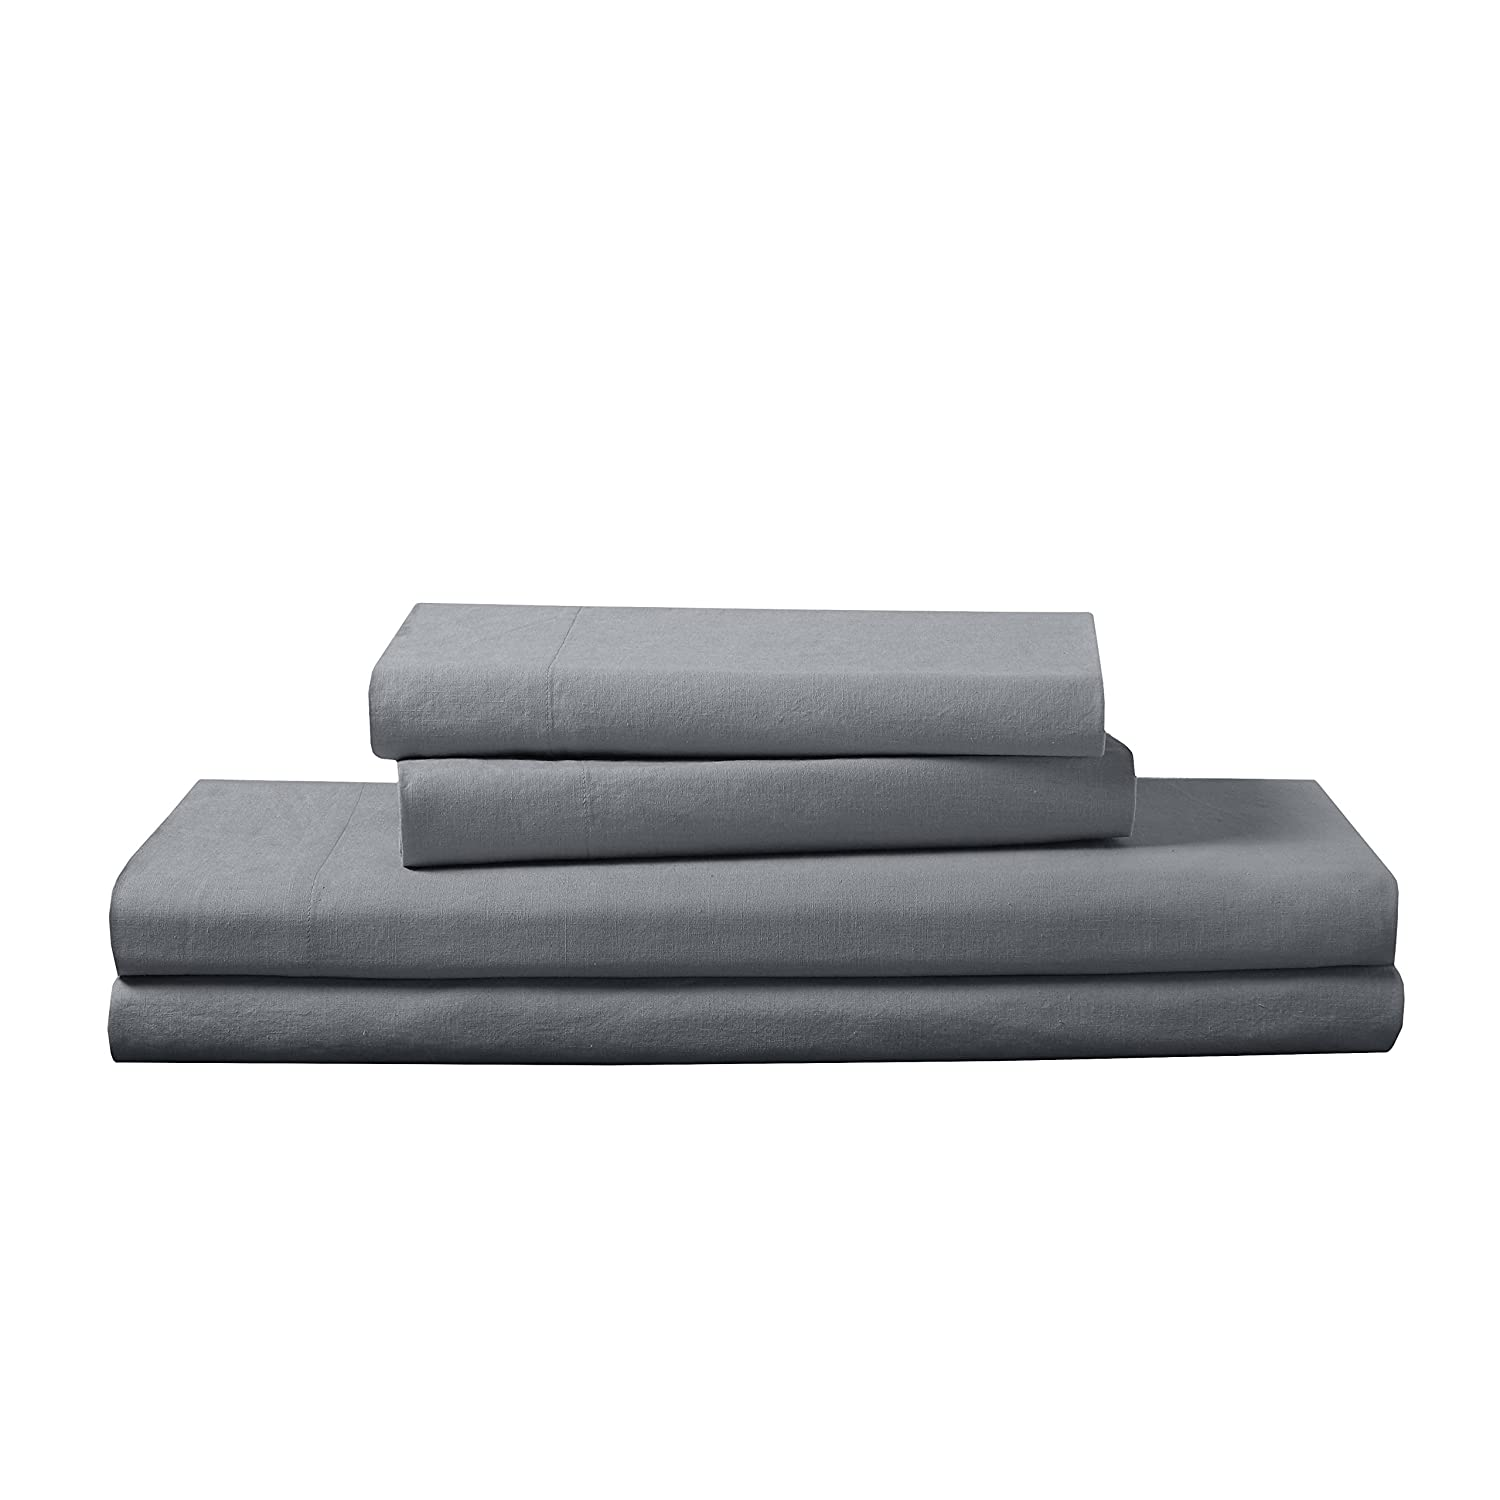 Loft New York FRE651XXGRAY02 Luxury Sheet Set Full Gray Levinsohn Textile Company